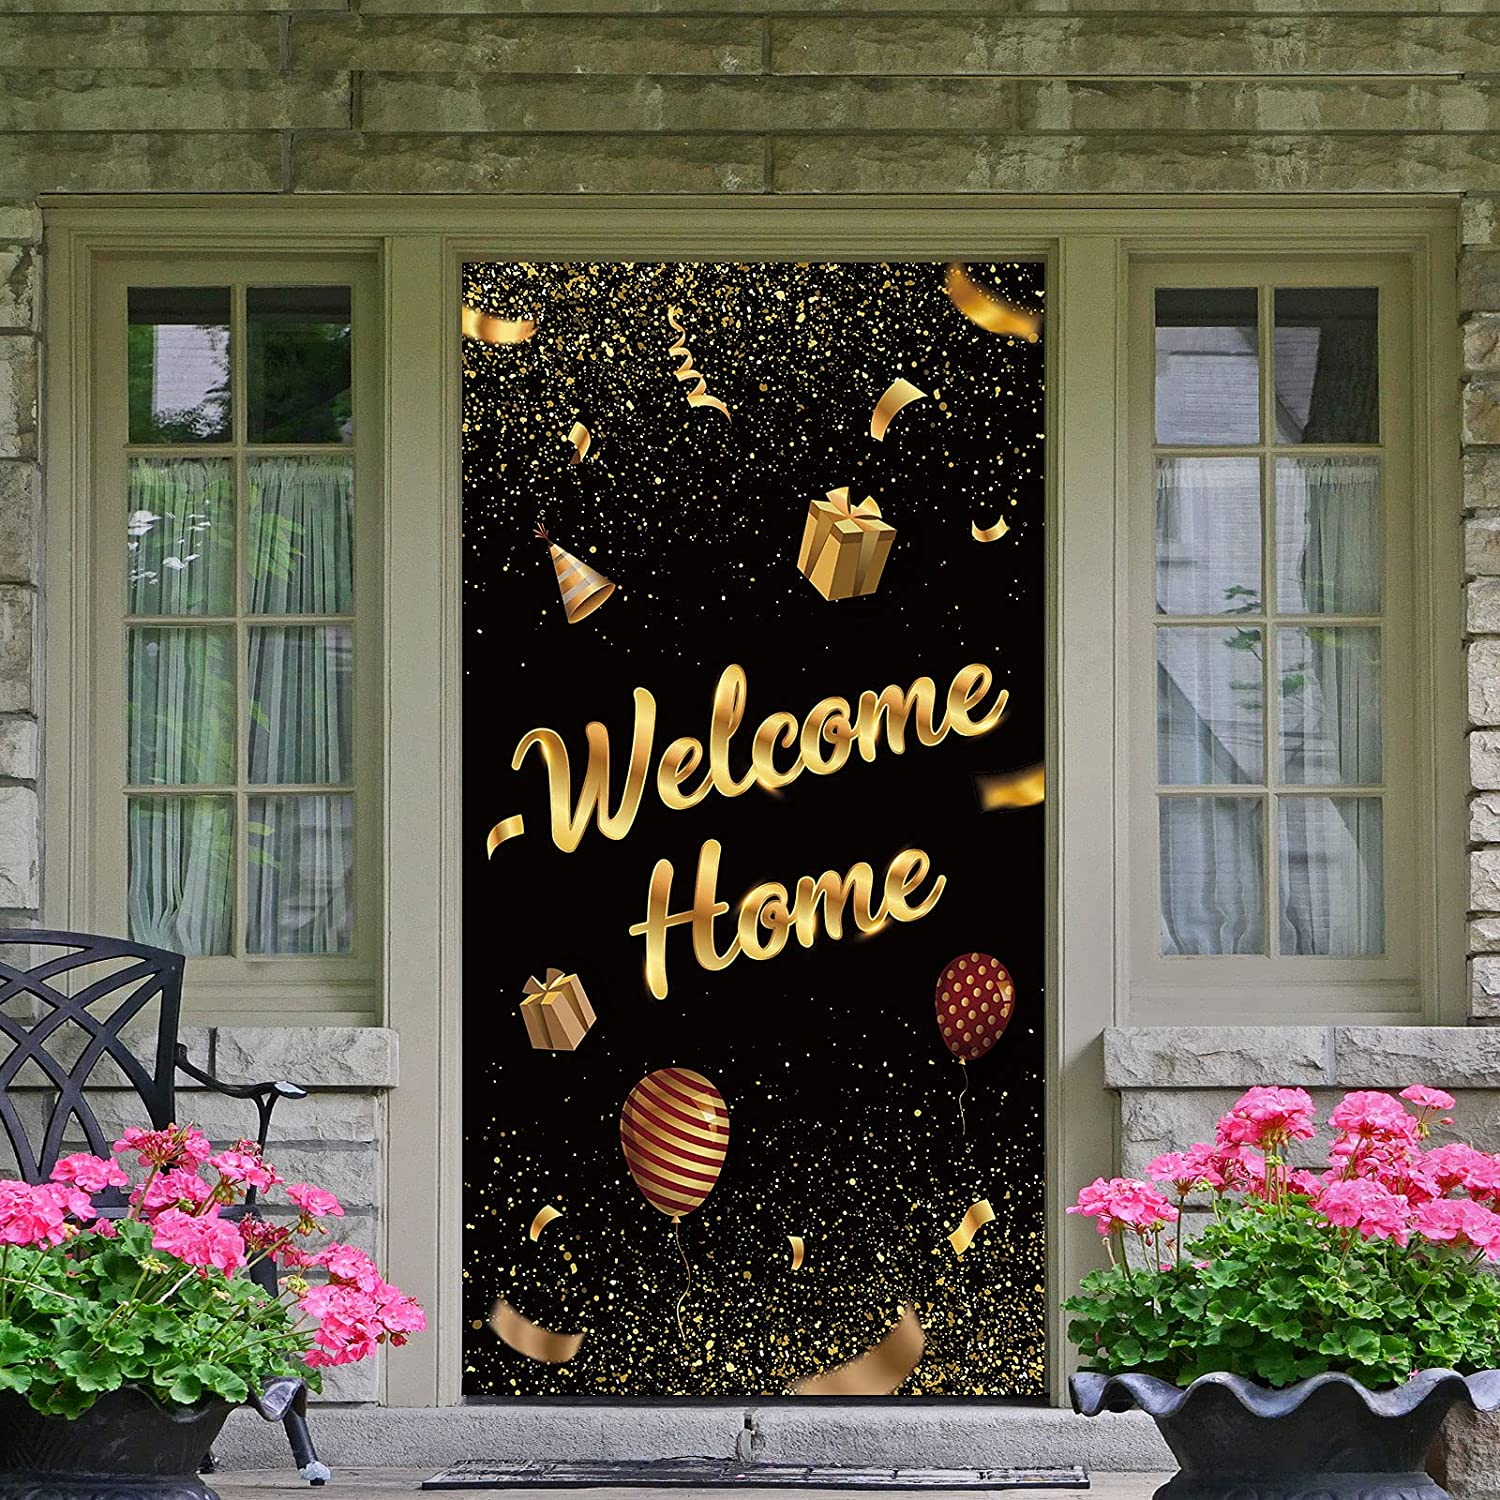 Dill-Dall Welcome Home Door Banner, Housewarming Patriotic Military Decorations, Family Party Supplies, Welcome Back Photo Props